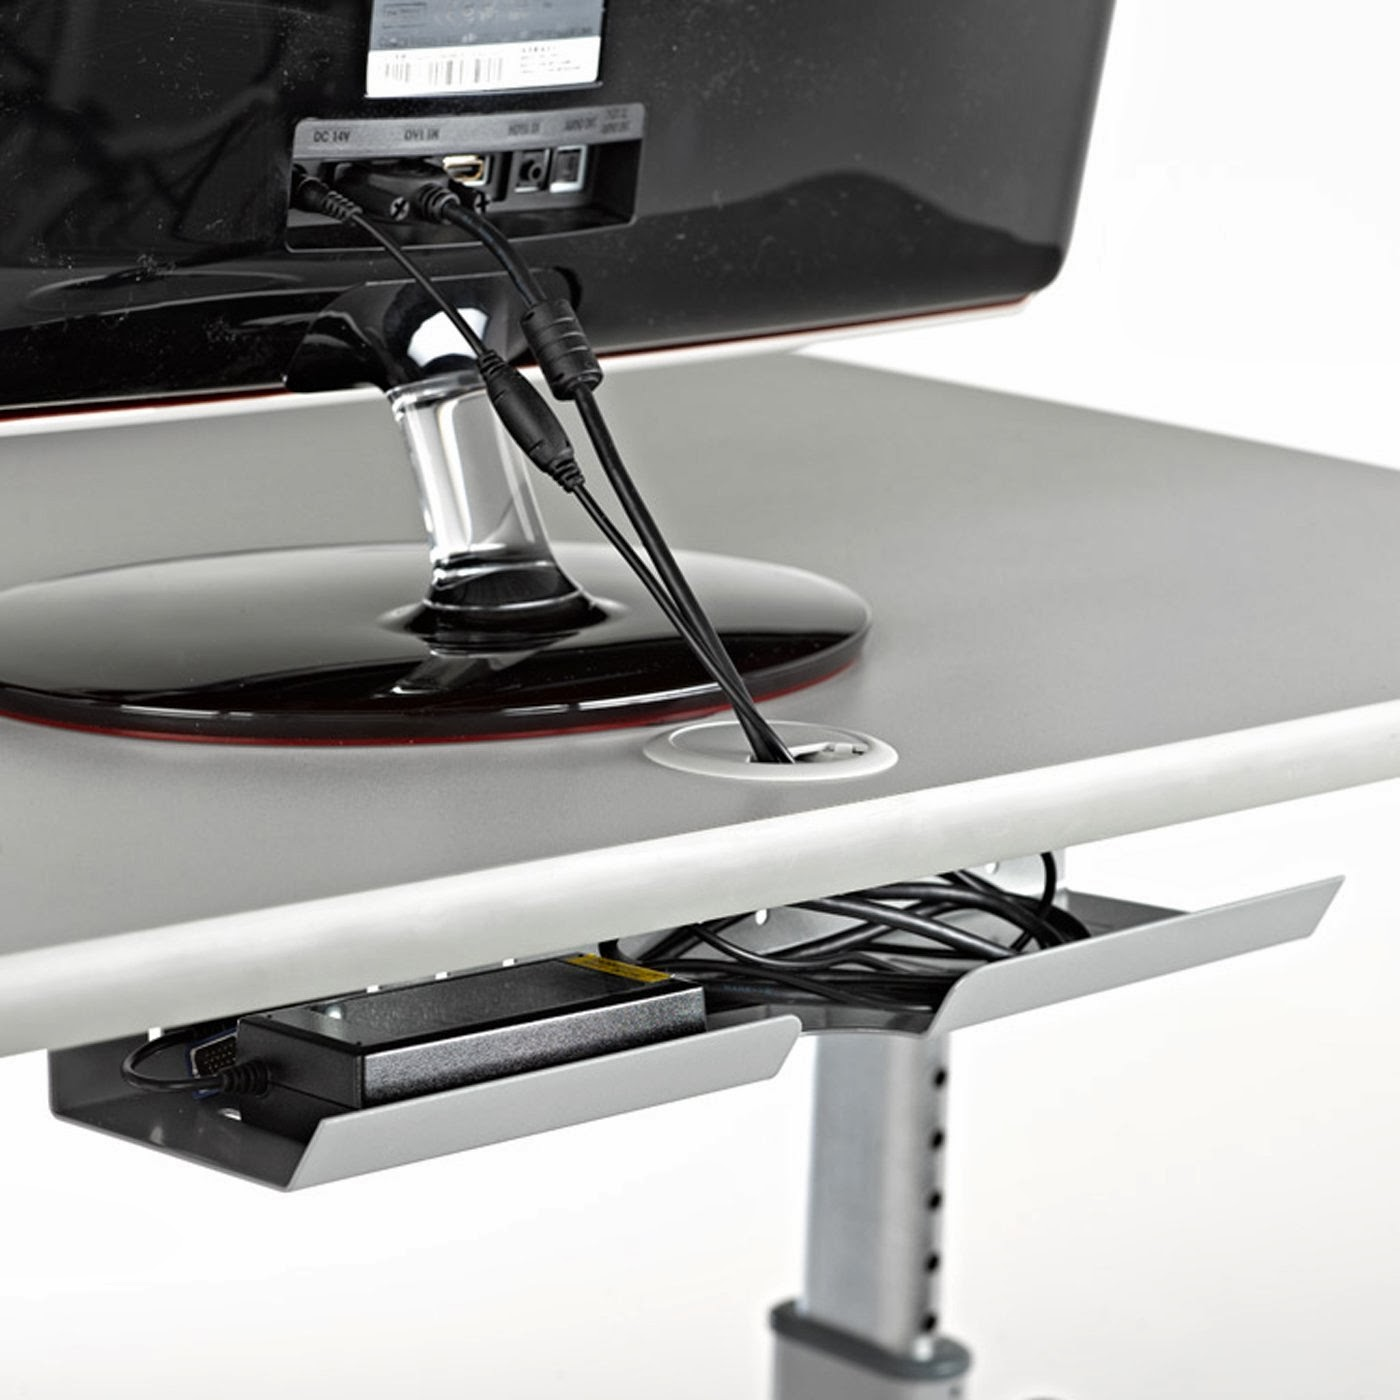 LifeSpan TR1200-DT5 Treadmill Desk, rear cable slot & tray to keep wires tidy